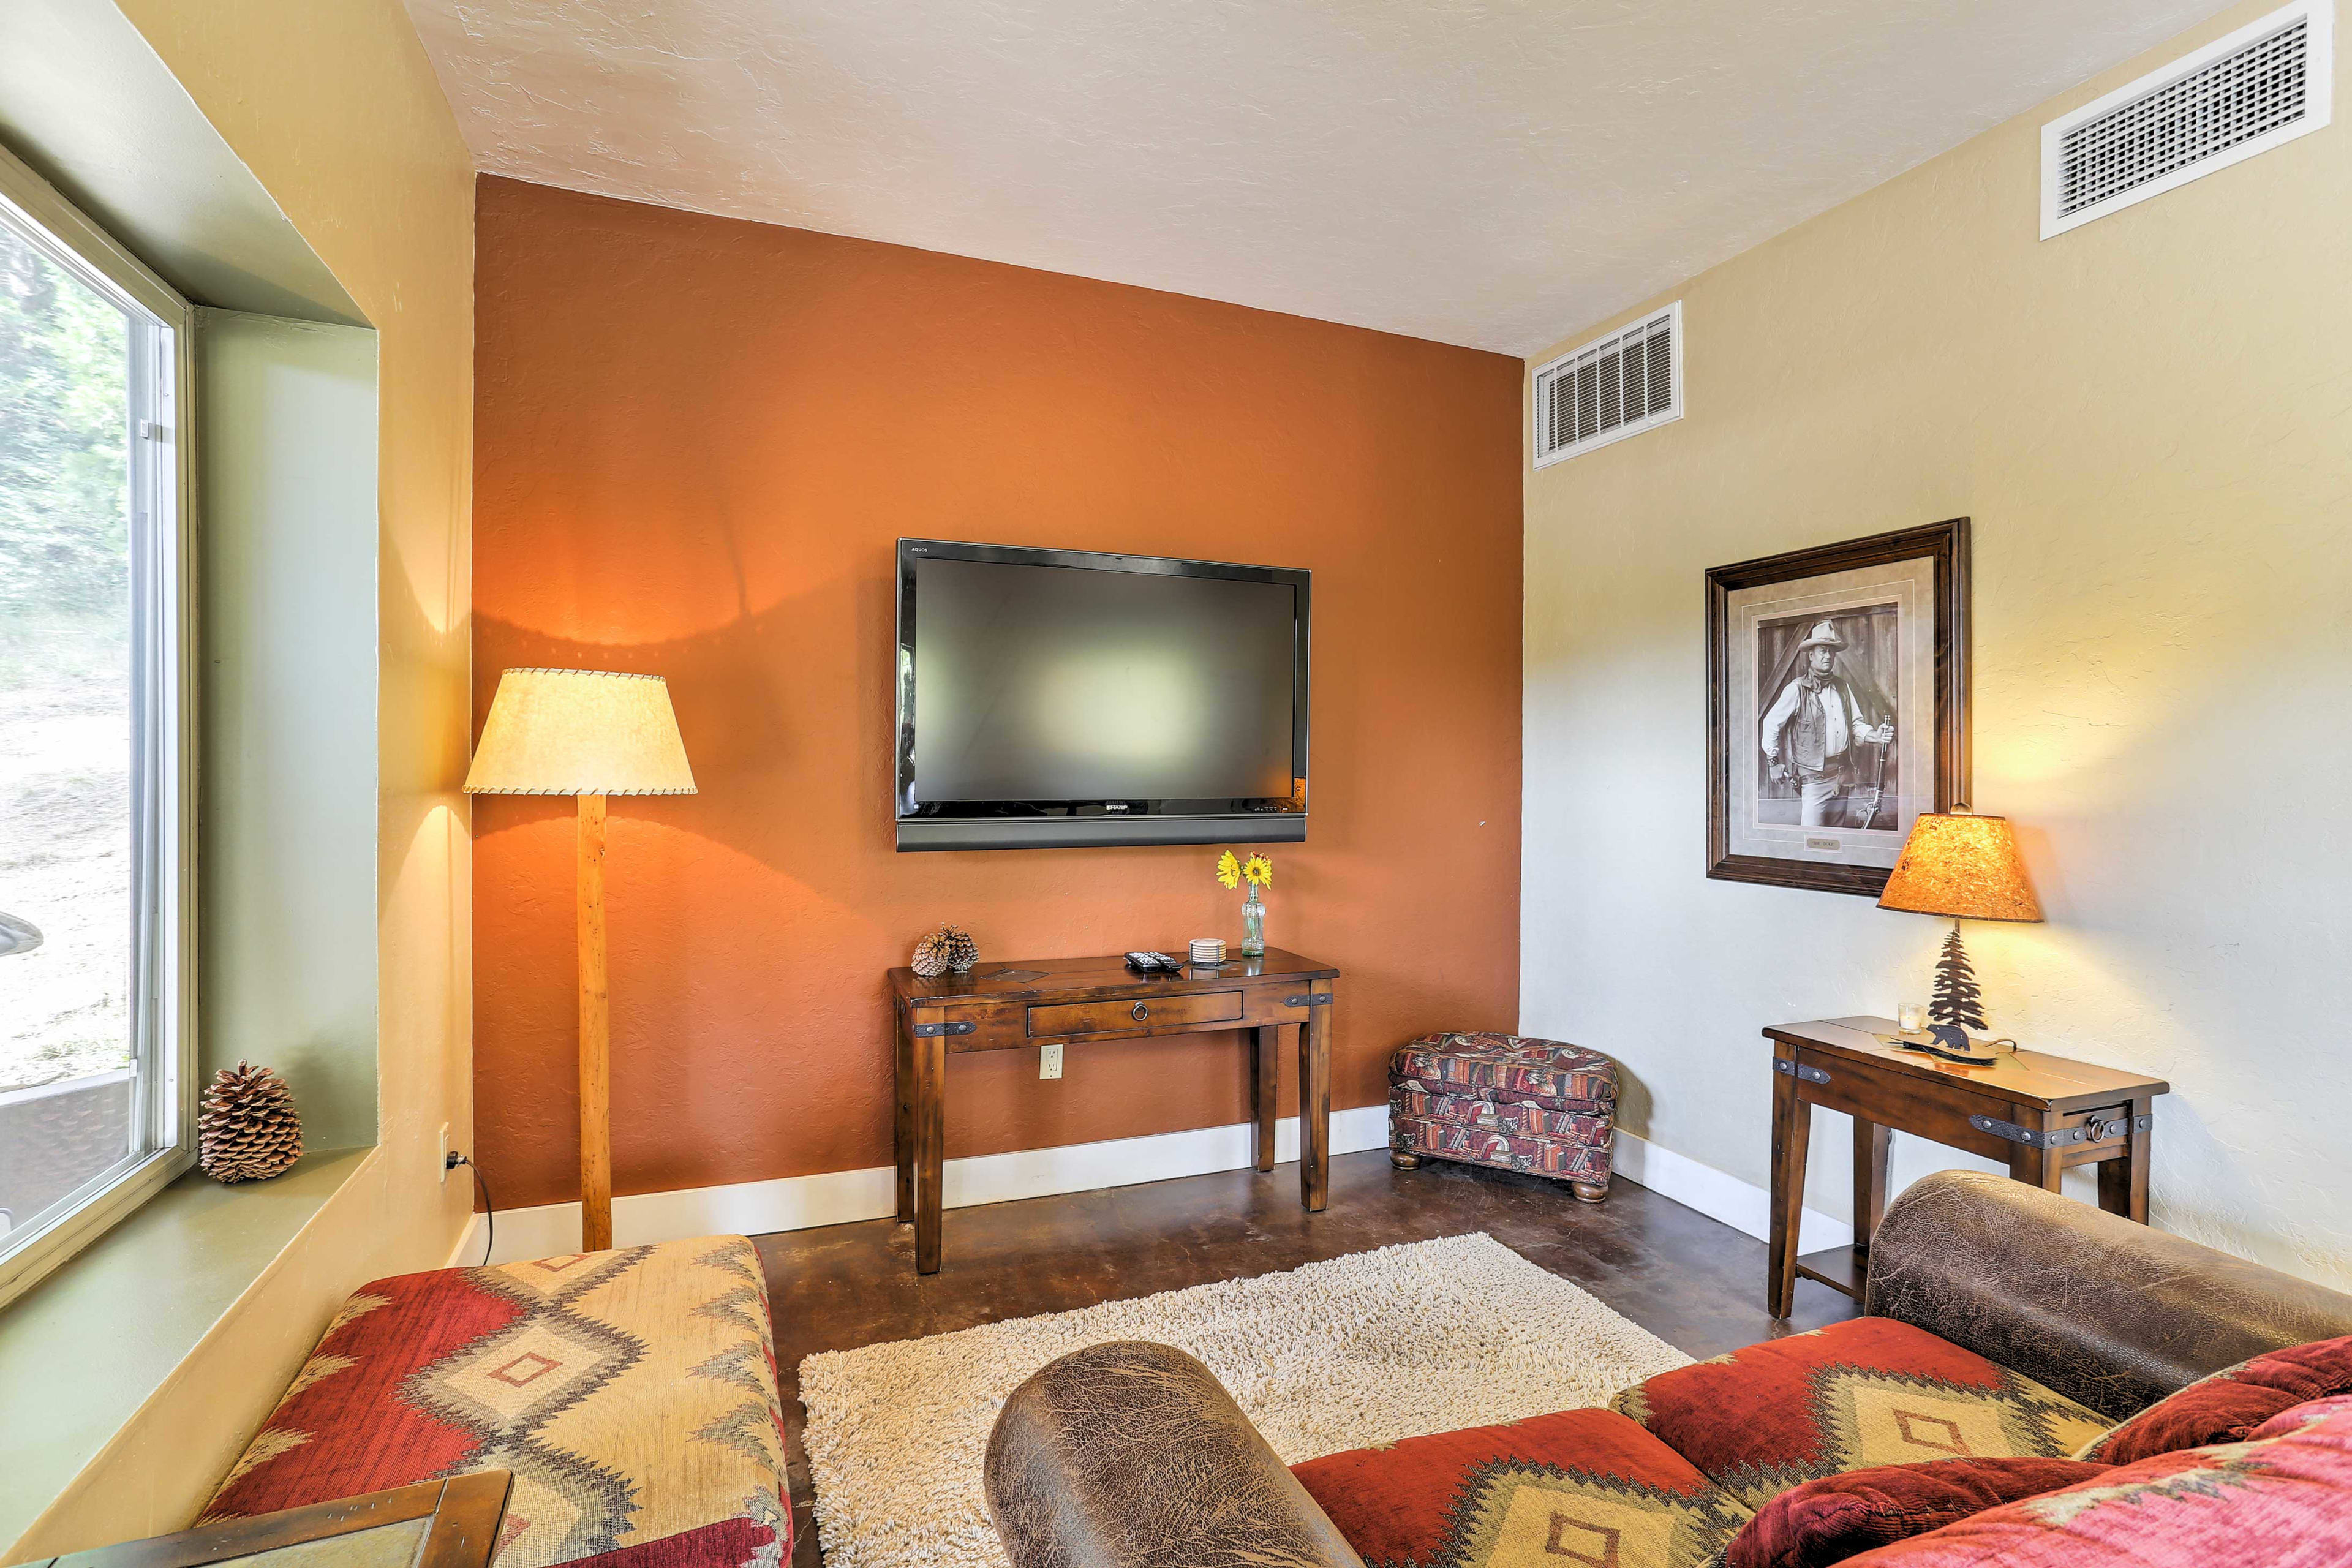 Enjoy a movie in the basement living room using the flat-screen satellite TV.